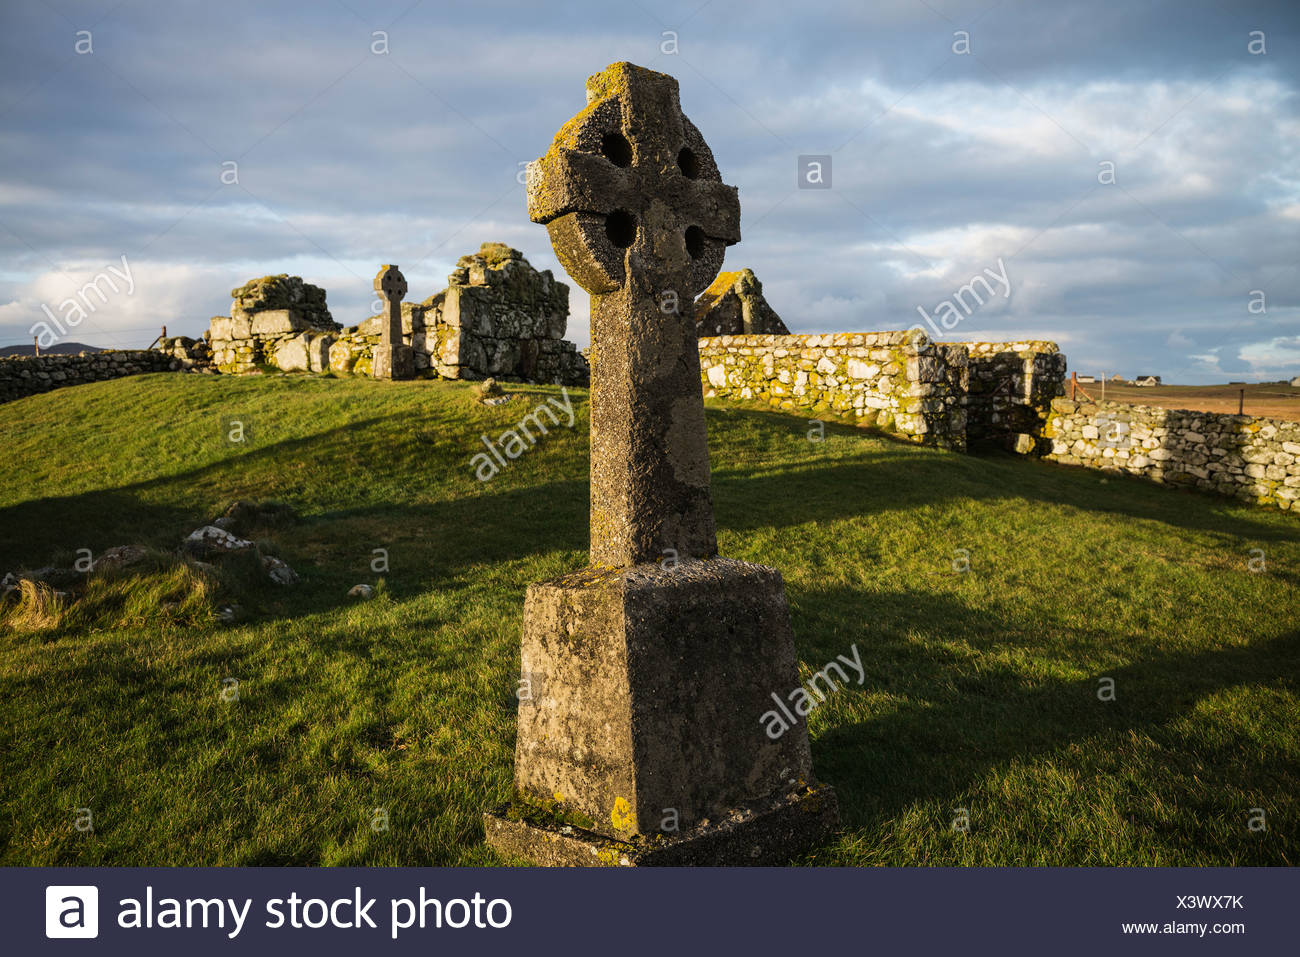 Grabstein im Friedhof, Howmore, South Uist, äußeren Hebriden, Schottland Stockbild